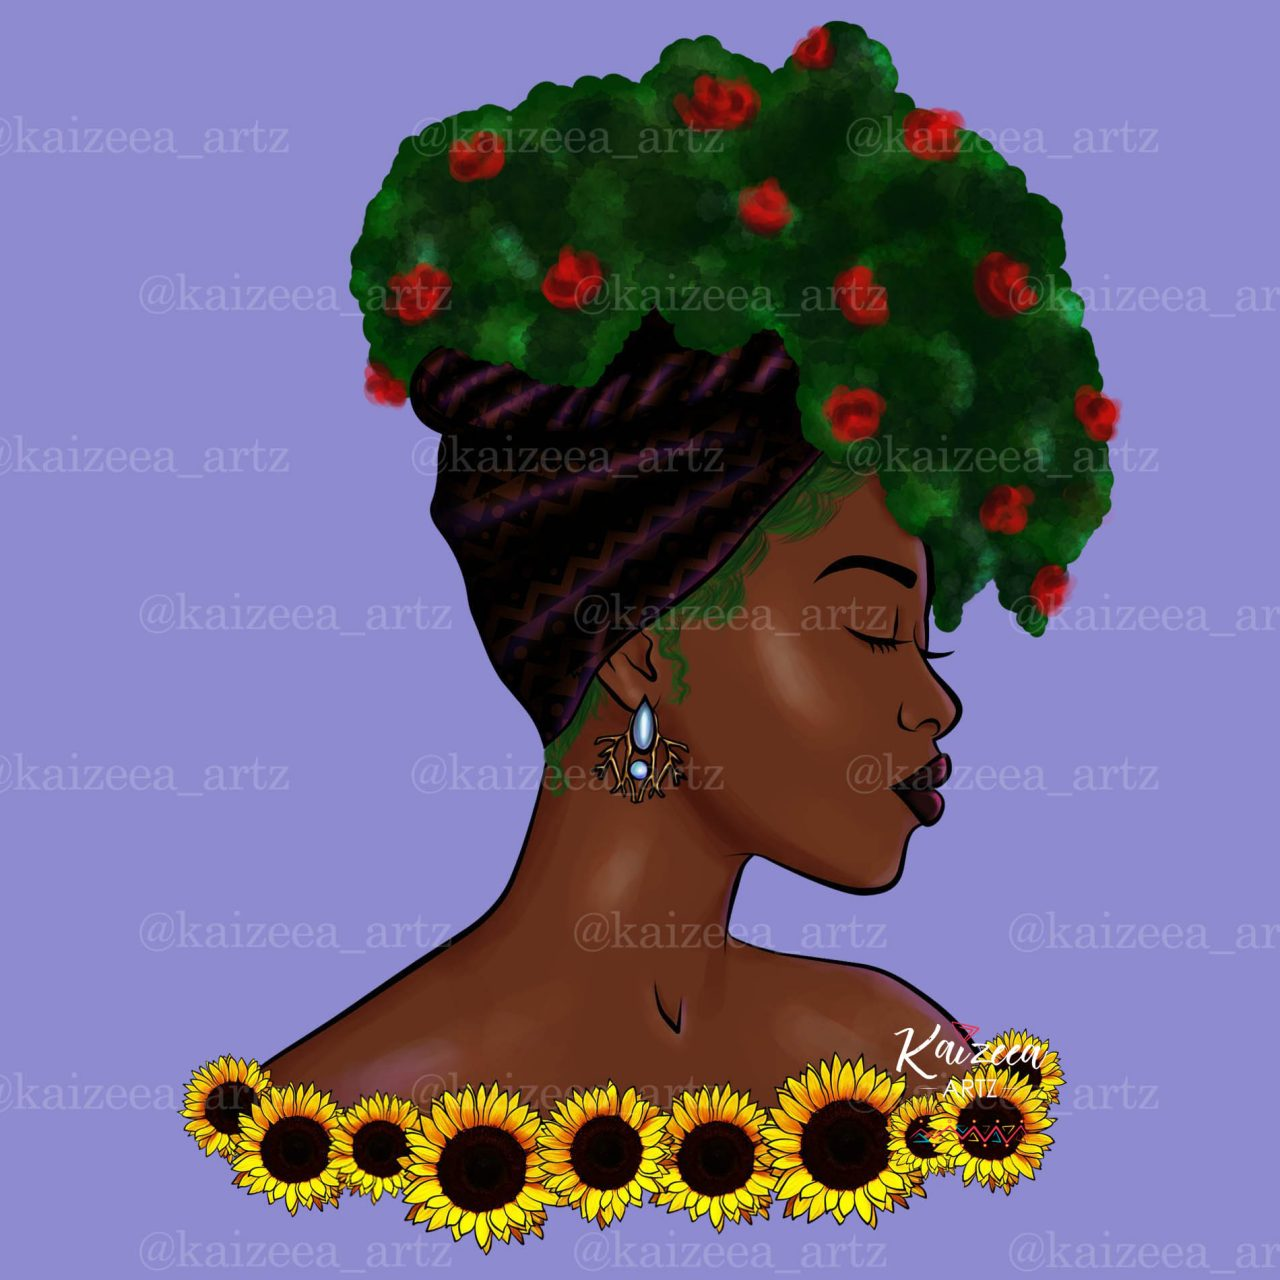 Kaizeeartz Kaizeea Artz art illustrator illustratrice art illustrate illustration digital art art numerique Mother Nature Mère Nature Headwrap Mawe Tet Girasol Sunflower Tournesol Fler Soleil Ariste Mauricienne Morisien Mauritius Ile Maurice Mauritius Mauritius Island Mauritian Artist Hair Afro Afro Hair Hairstyle 4C hair salonde coiffure rose flower botanist botanical